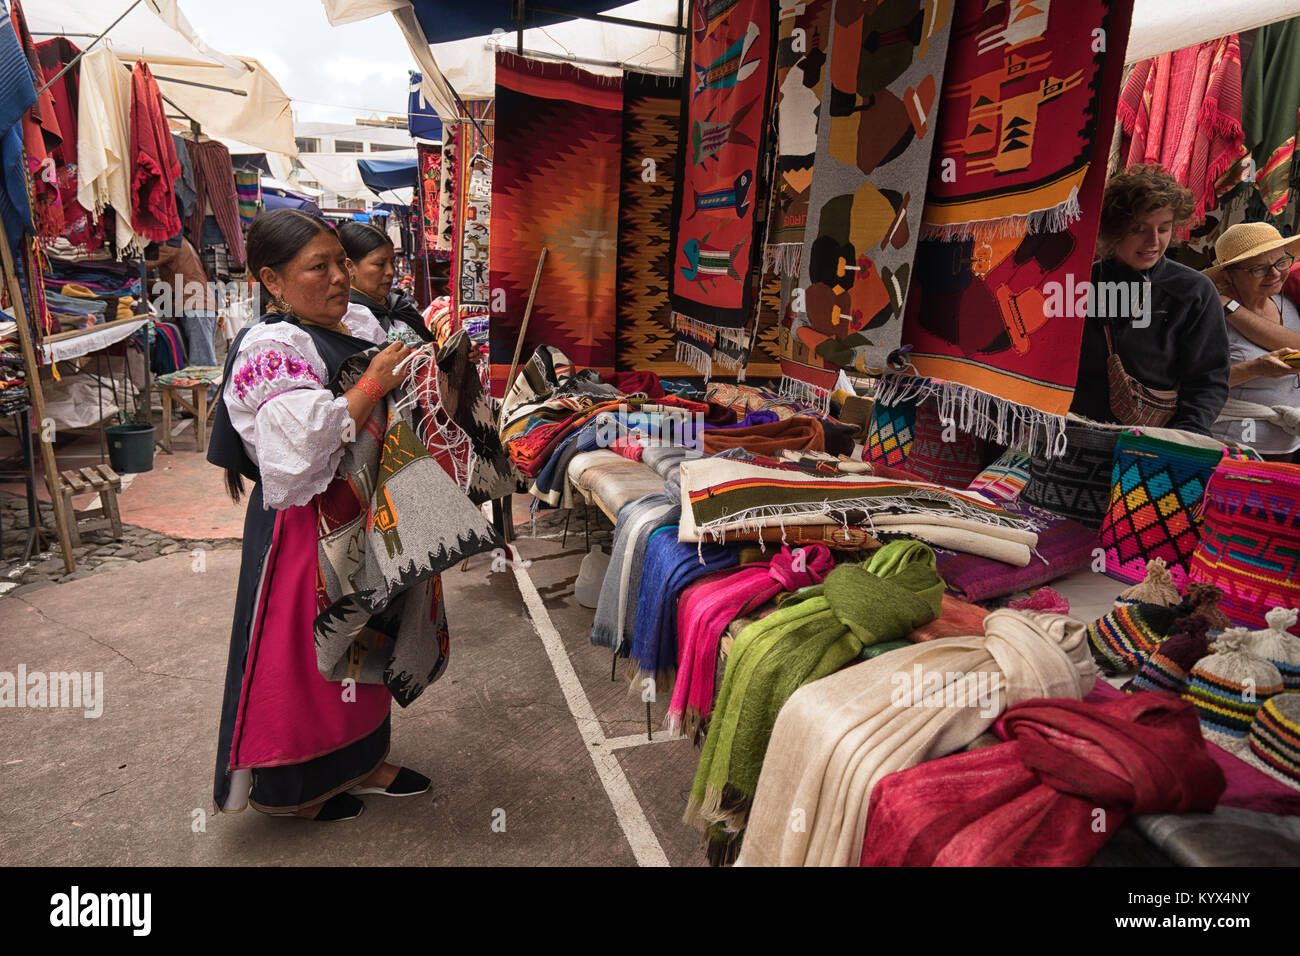 Otavalo, Ecuador - January 13, 2018: the artisan market in Plaza de Ponchos is very popular with tourists - Stock Image